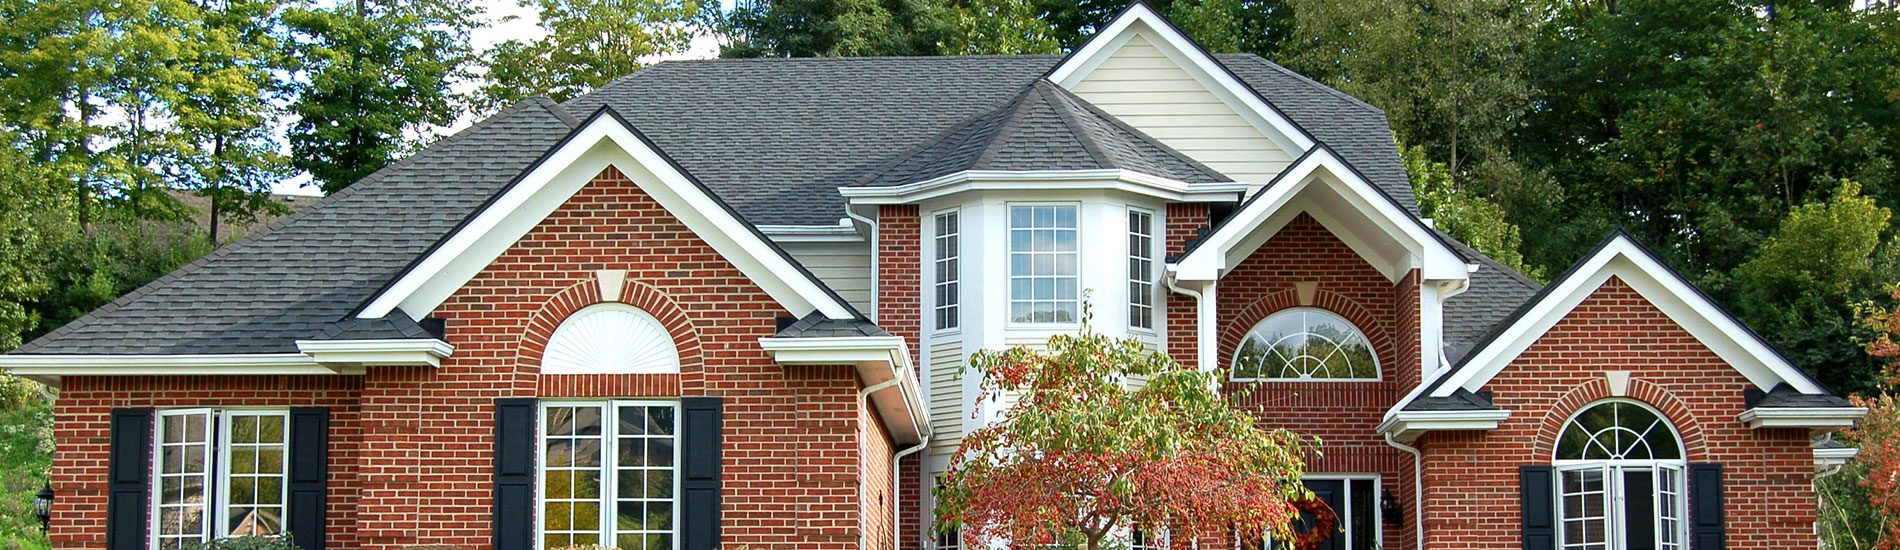 Residential Roofing Services in Central Indiana